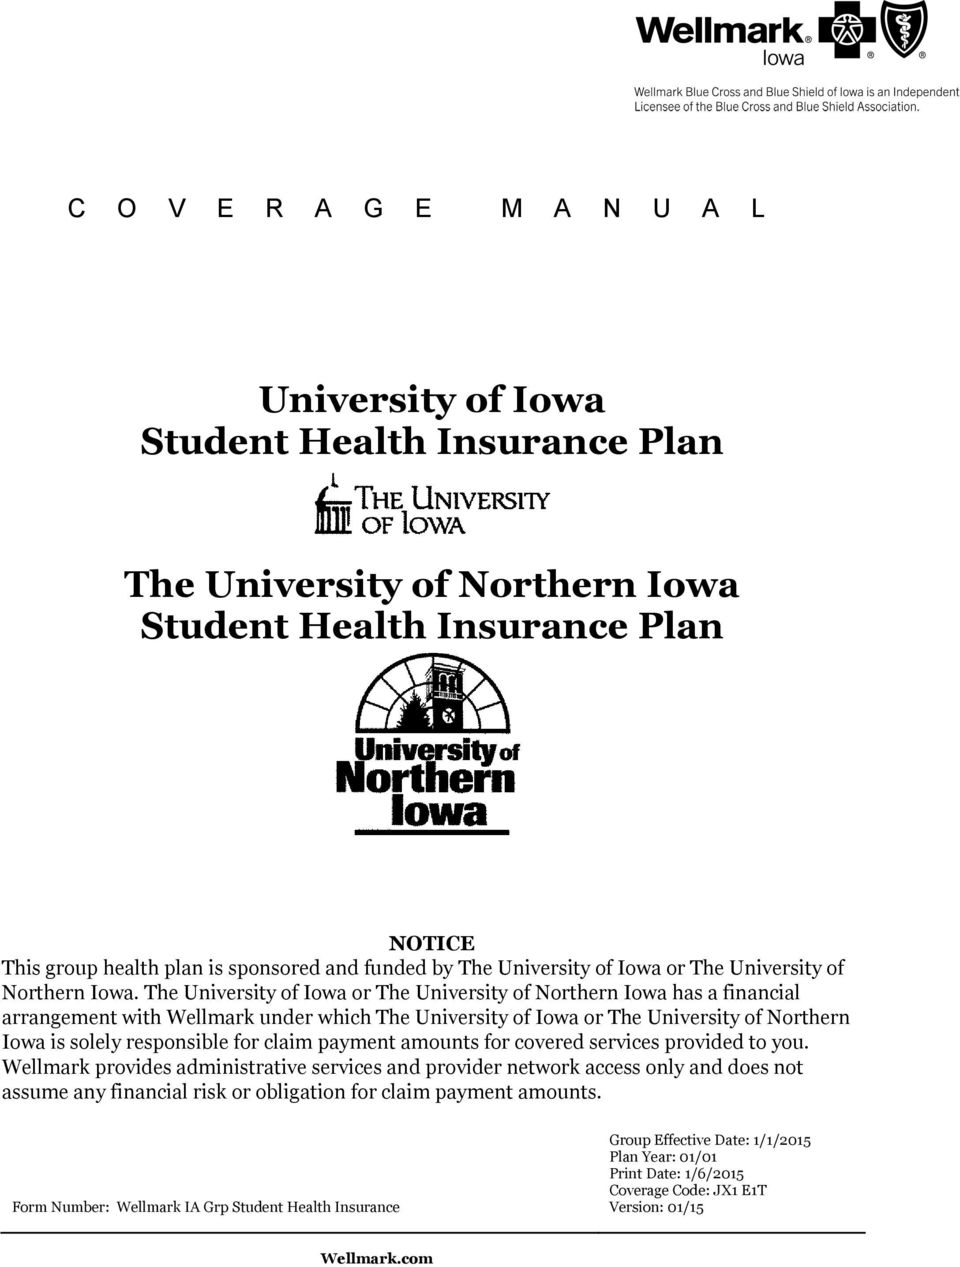 The University of Iowa or The University of Northern Iowa has a financial arrangement with Wellmark under which The University of Iowa or The University of Northern Iowa is solely responsible for